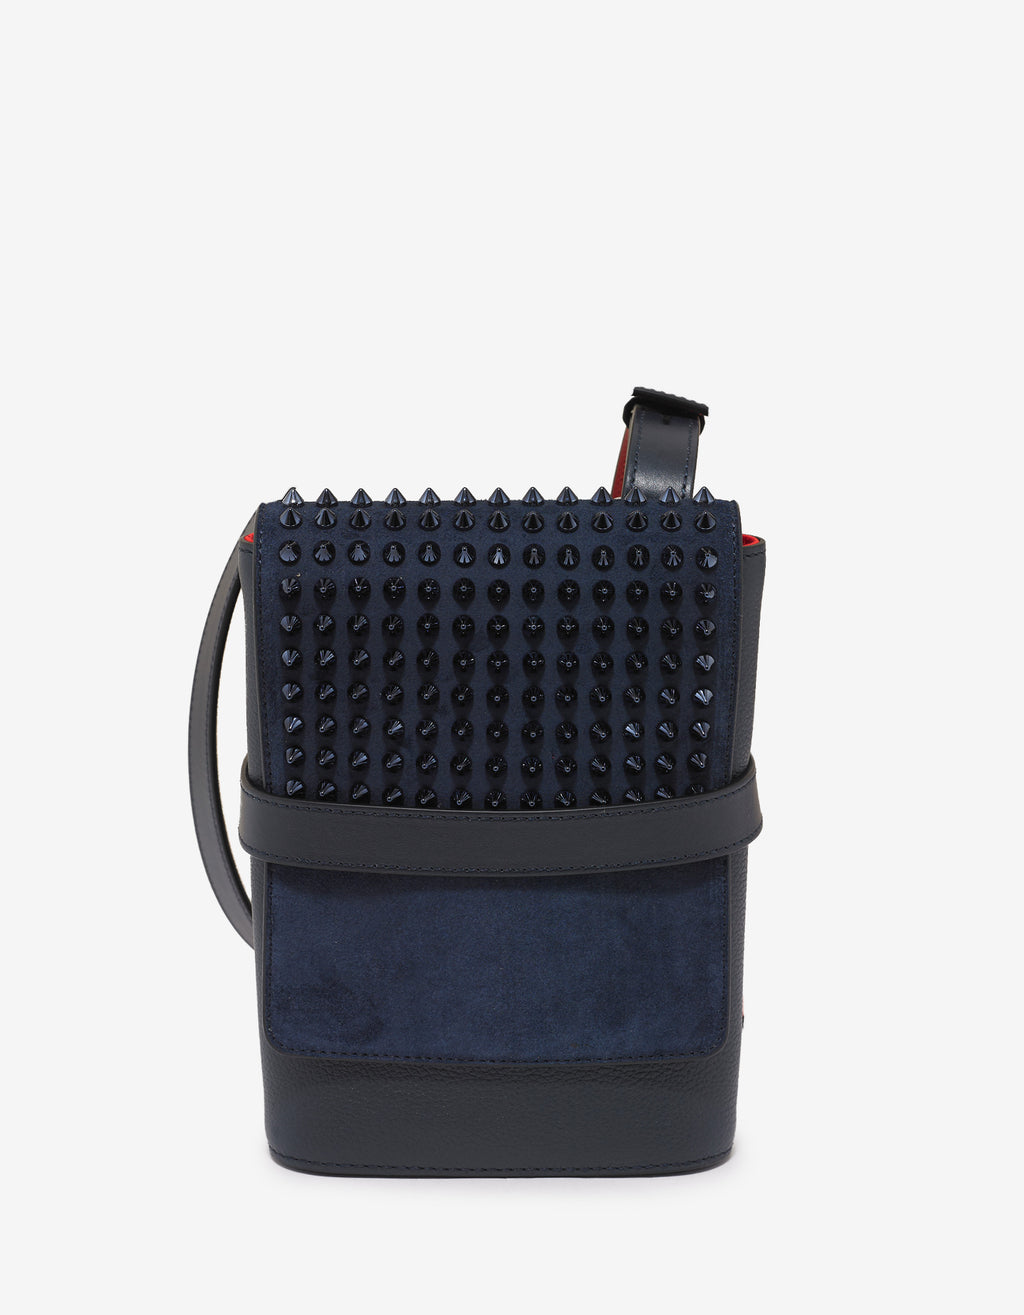 Benech Reporter Marine Blue Spikes Bag